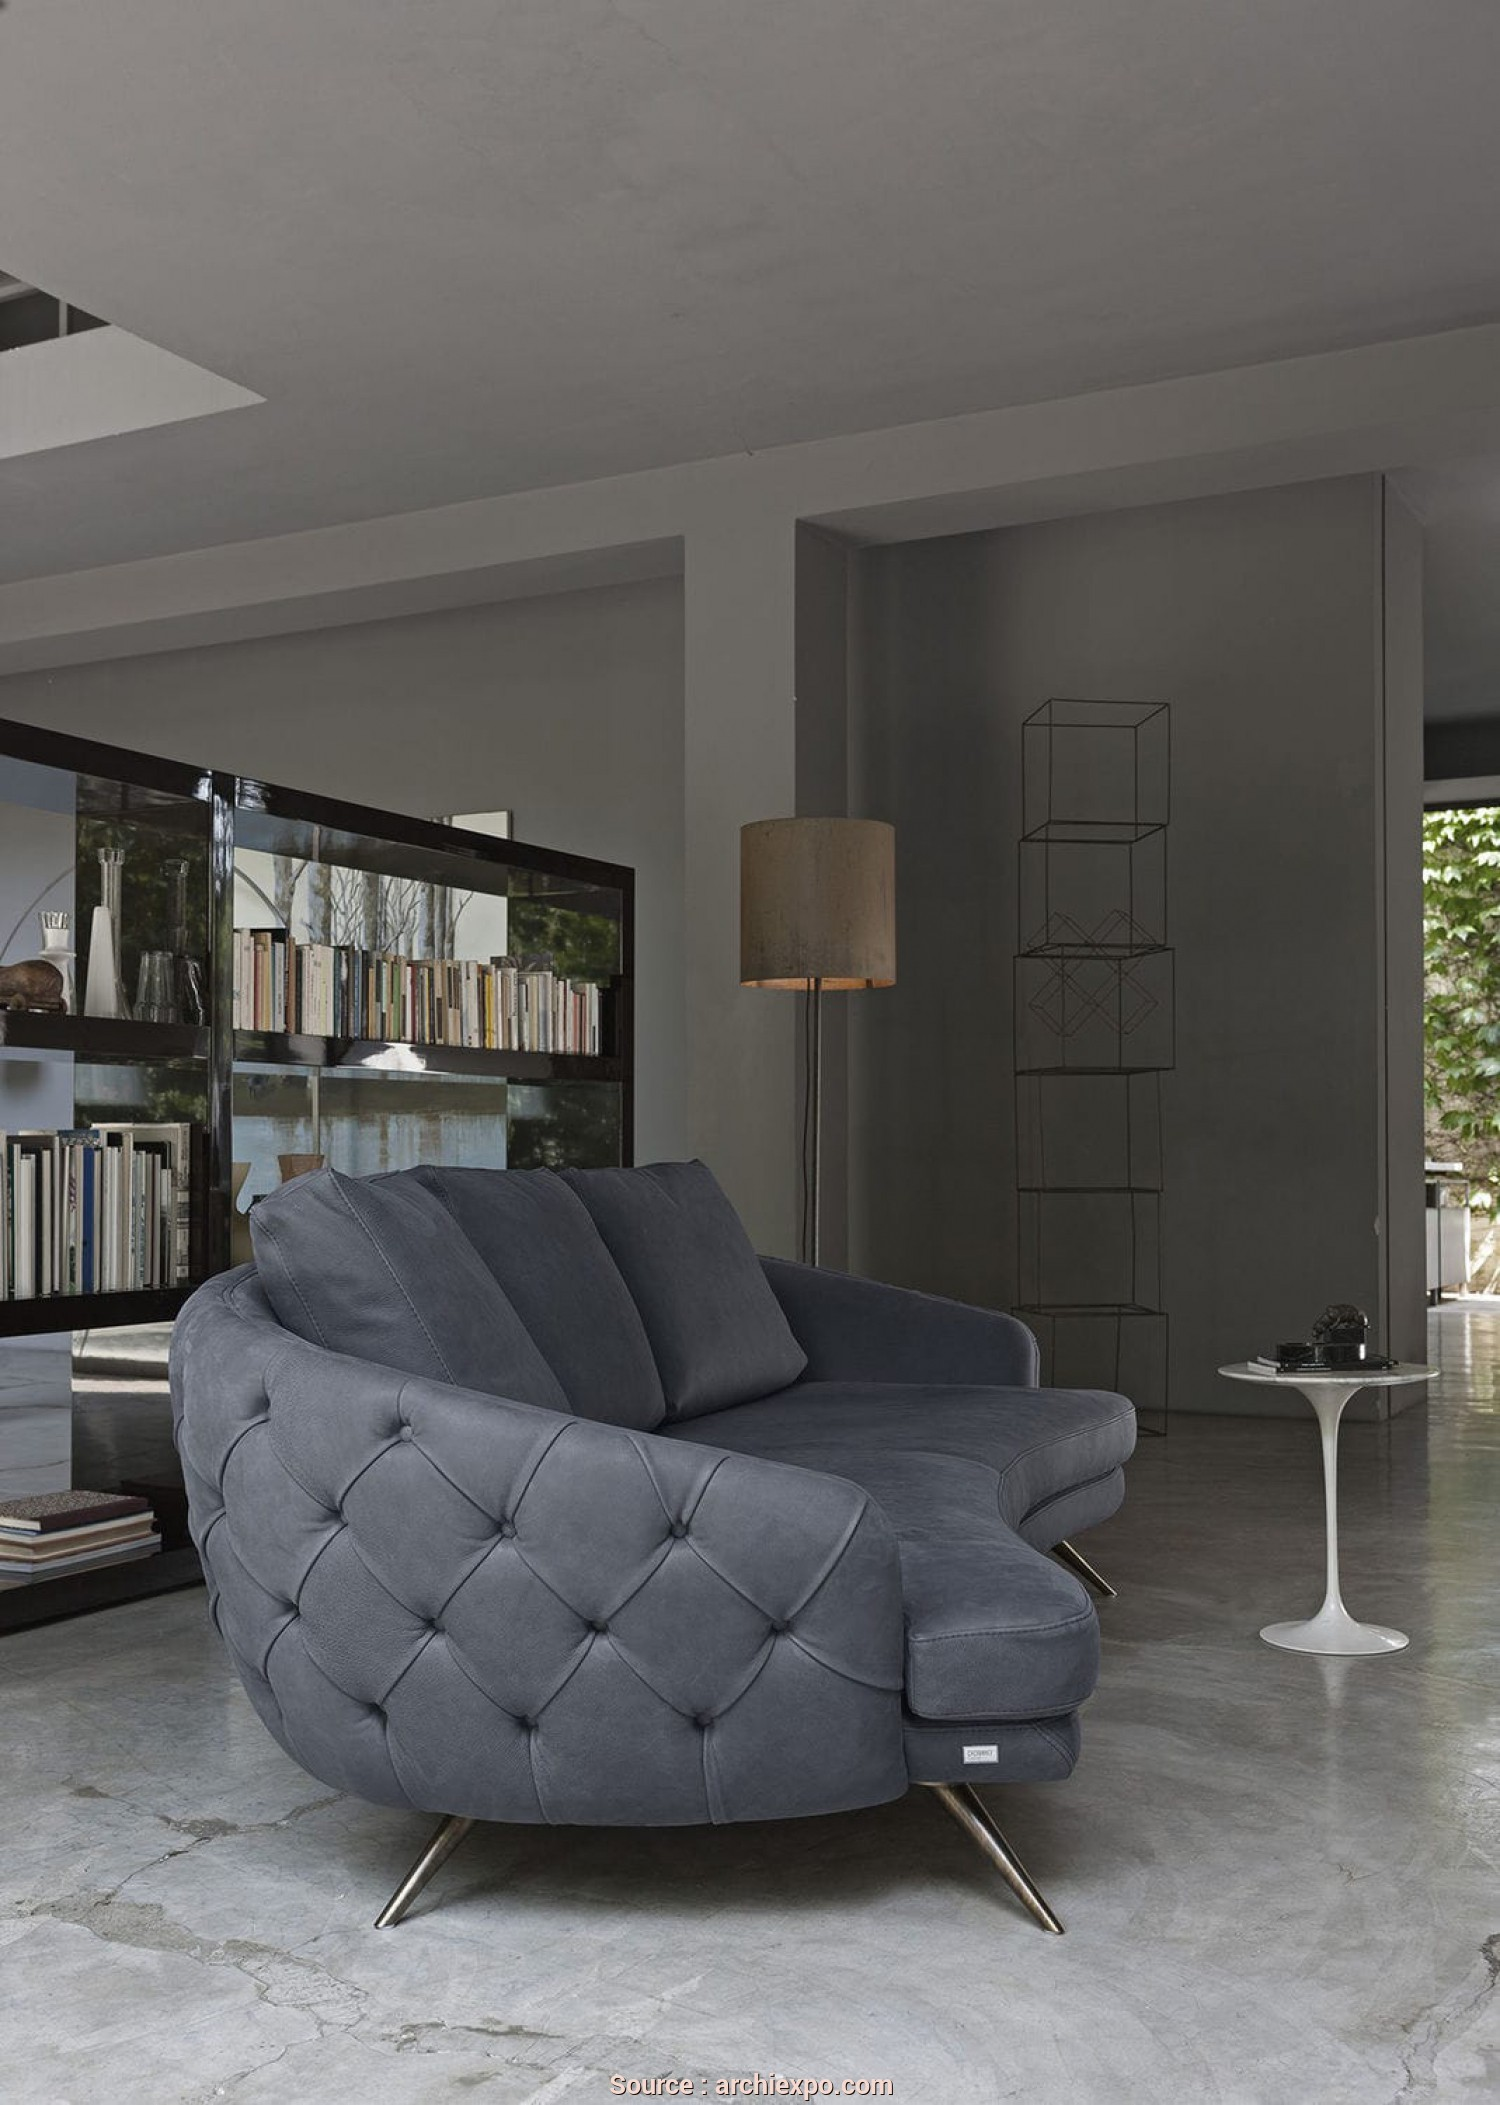 Divano Clark Doimo Prezzo, Incredibile Semicircular Sofa / Contemporary /, Reception Areas / Fabric. CLARK Doimo Salotti